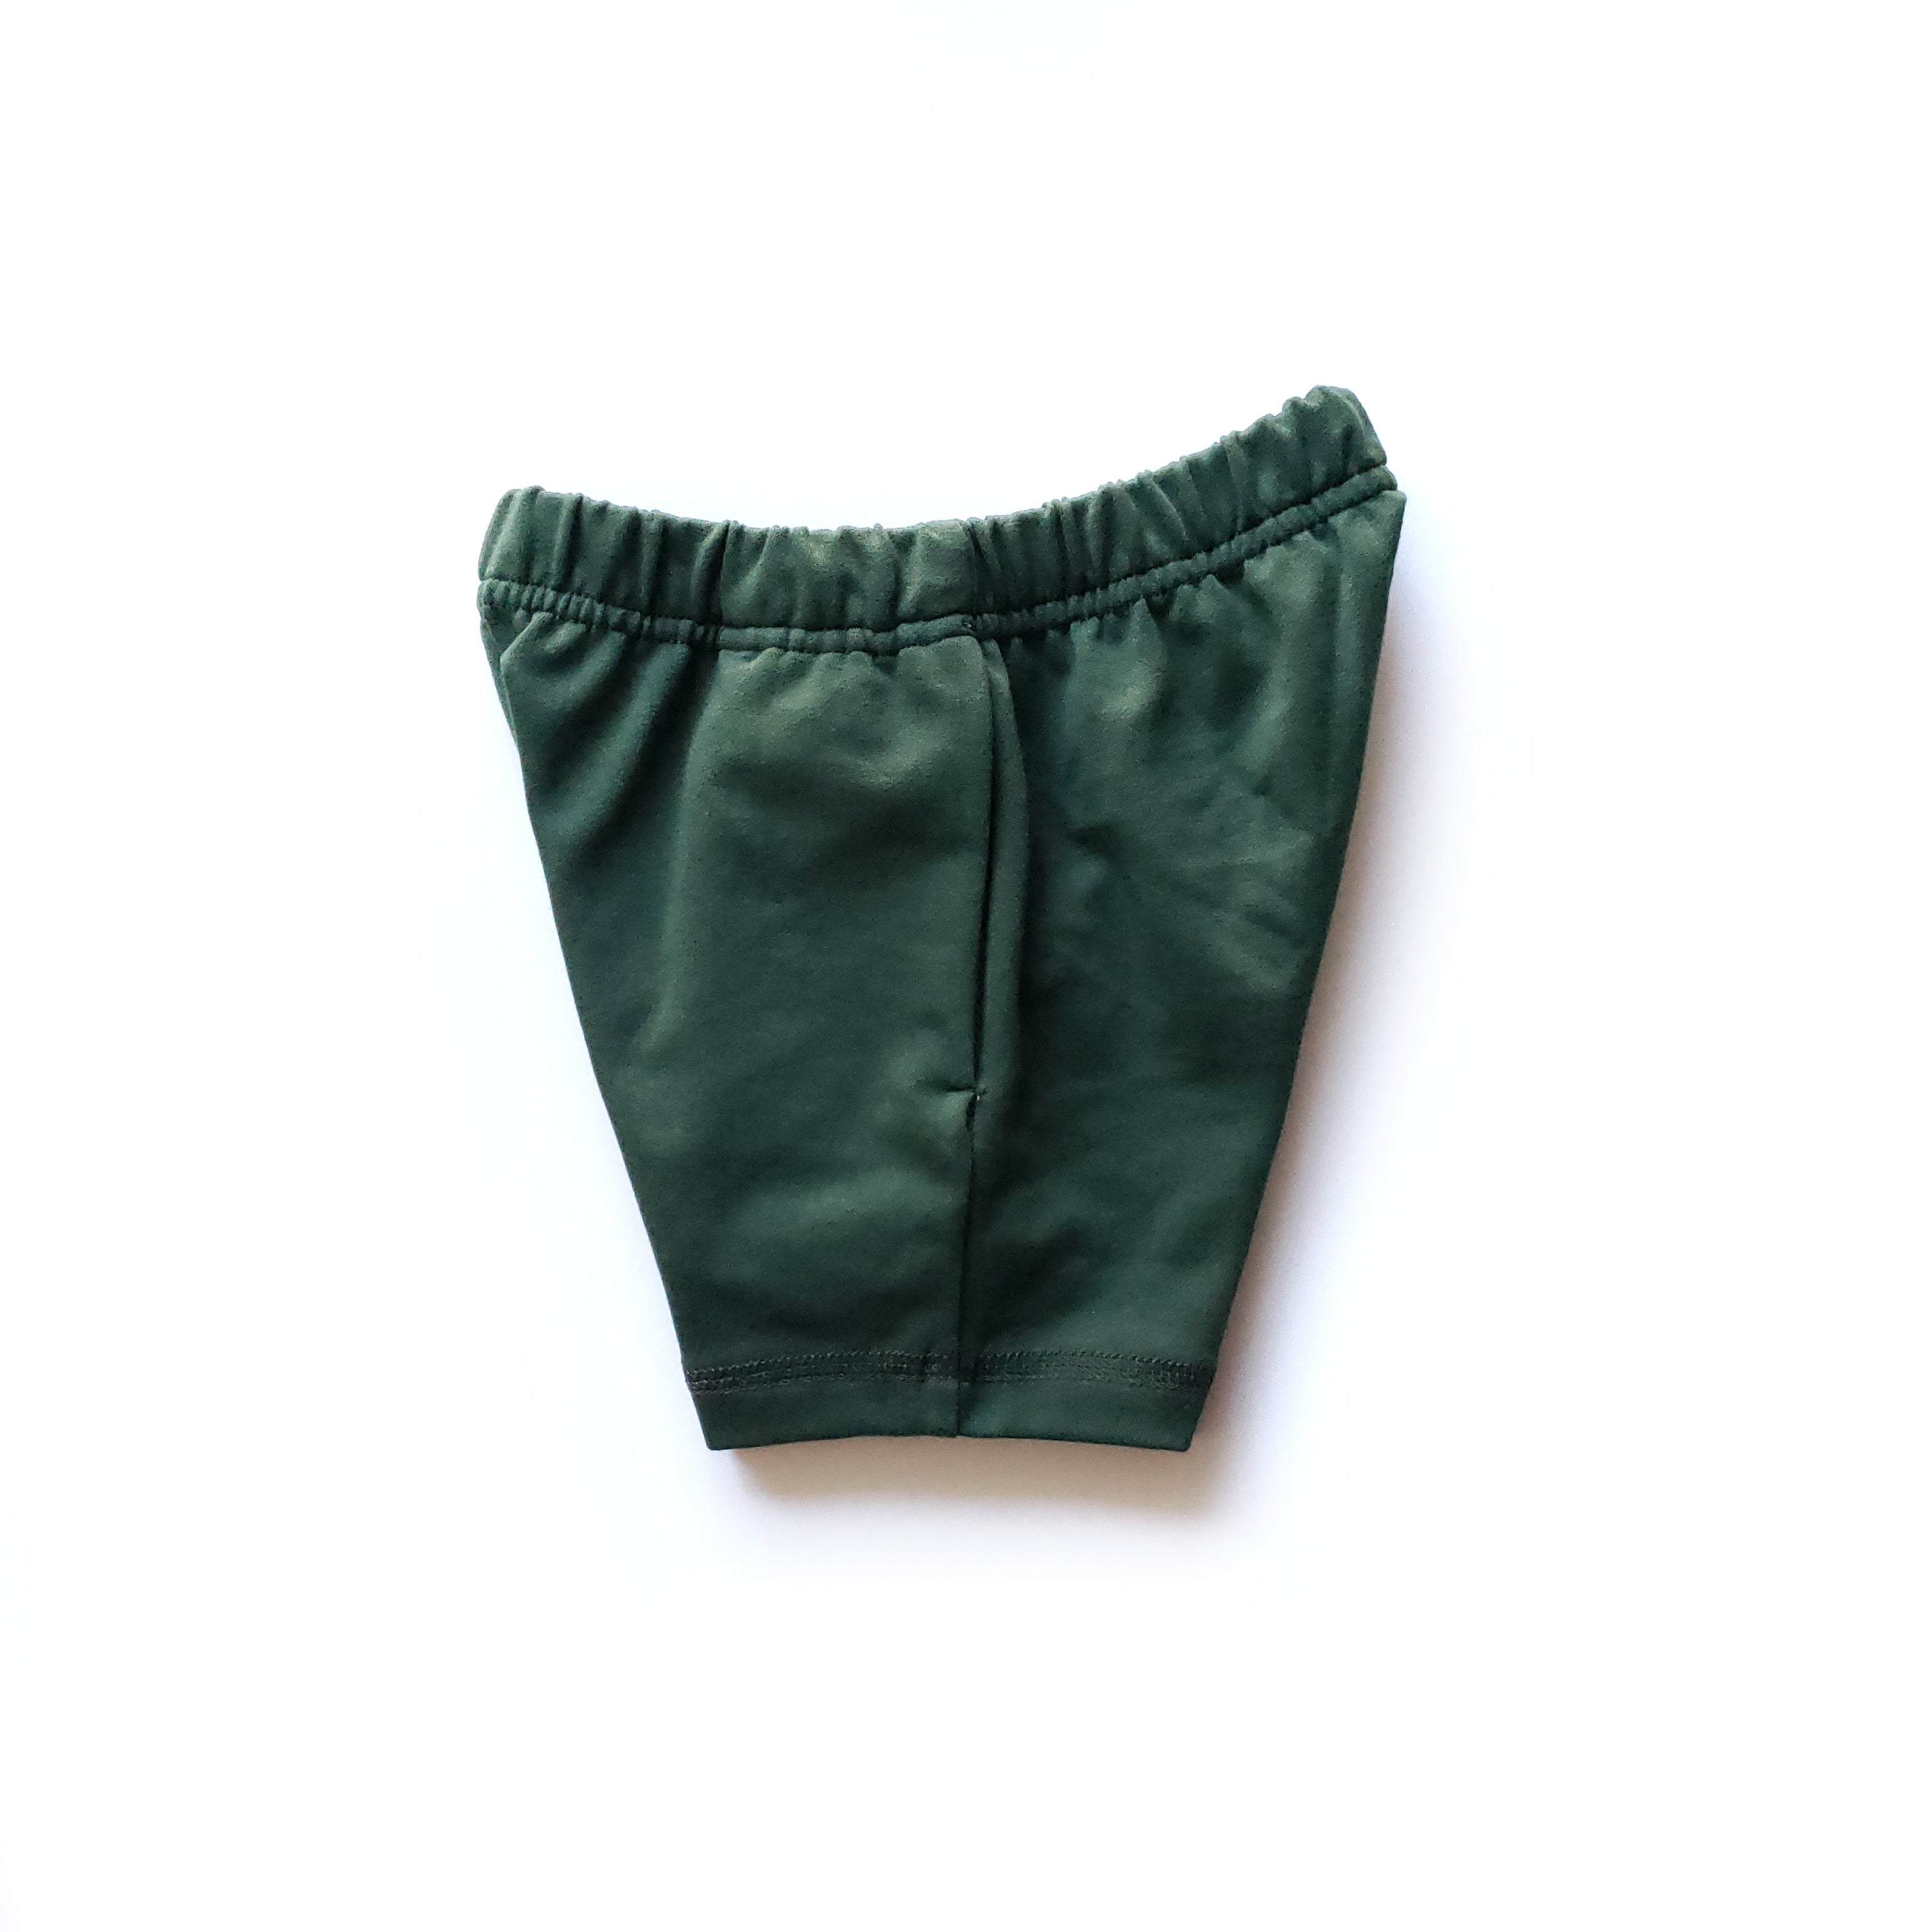 Everyday Shorts in Recycle - Side view